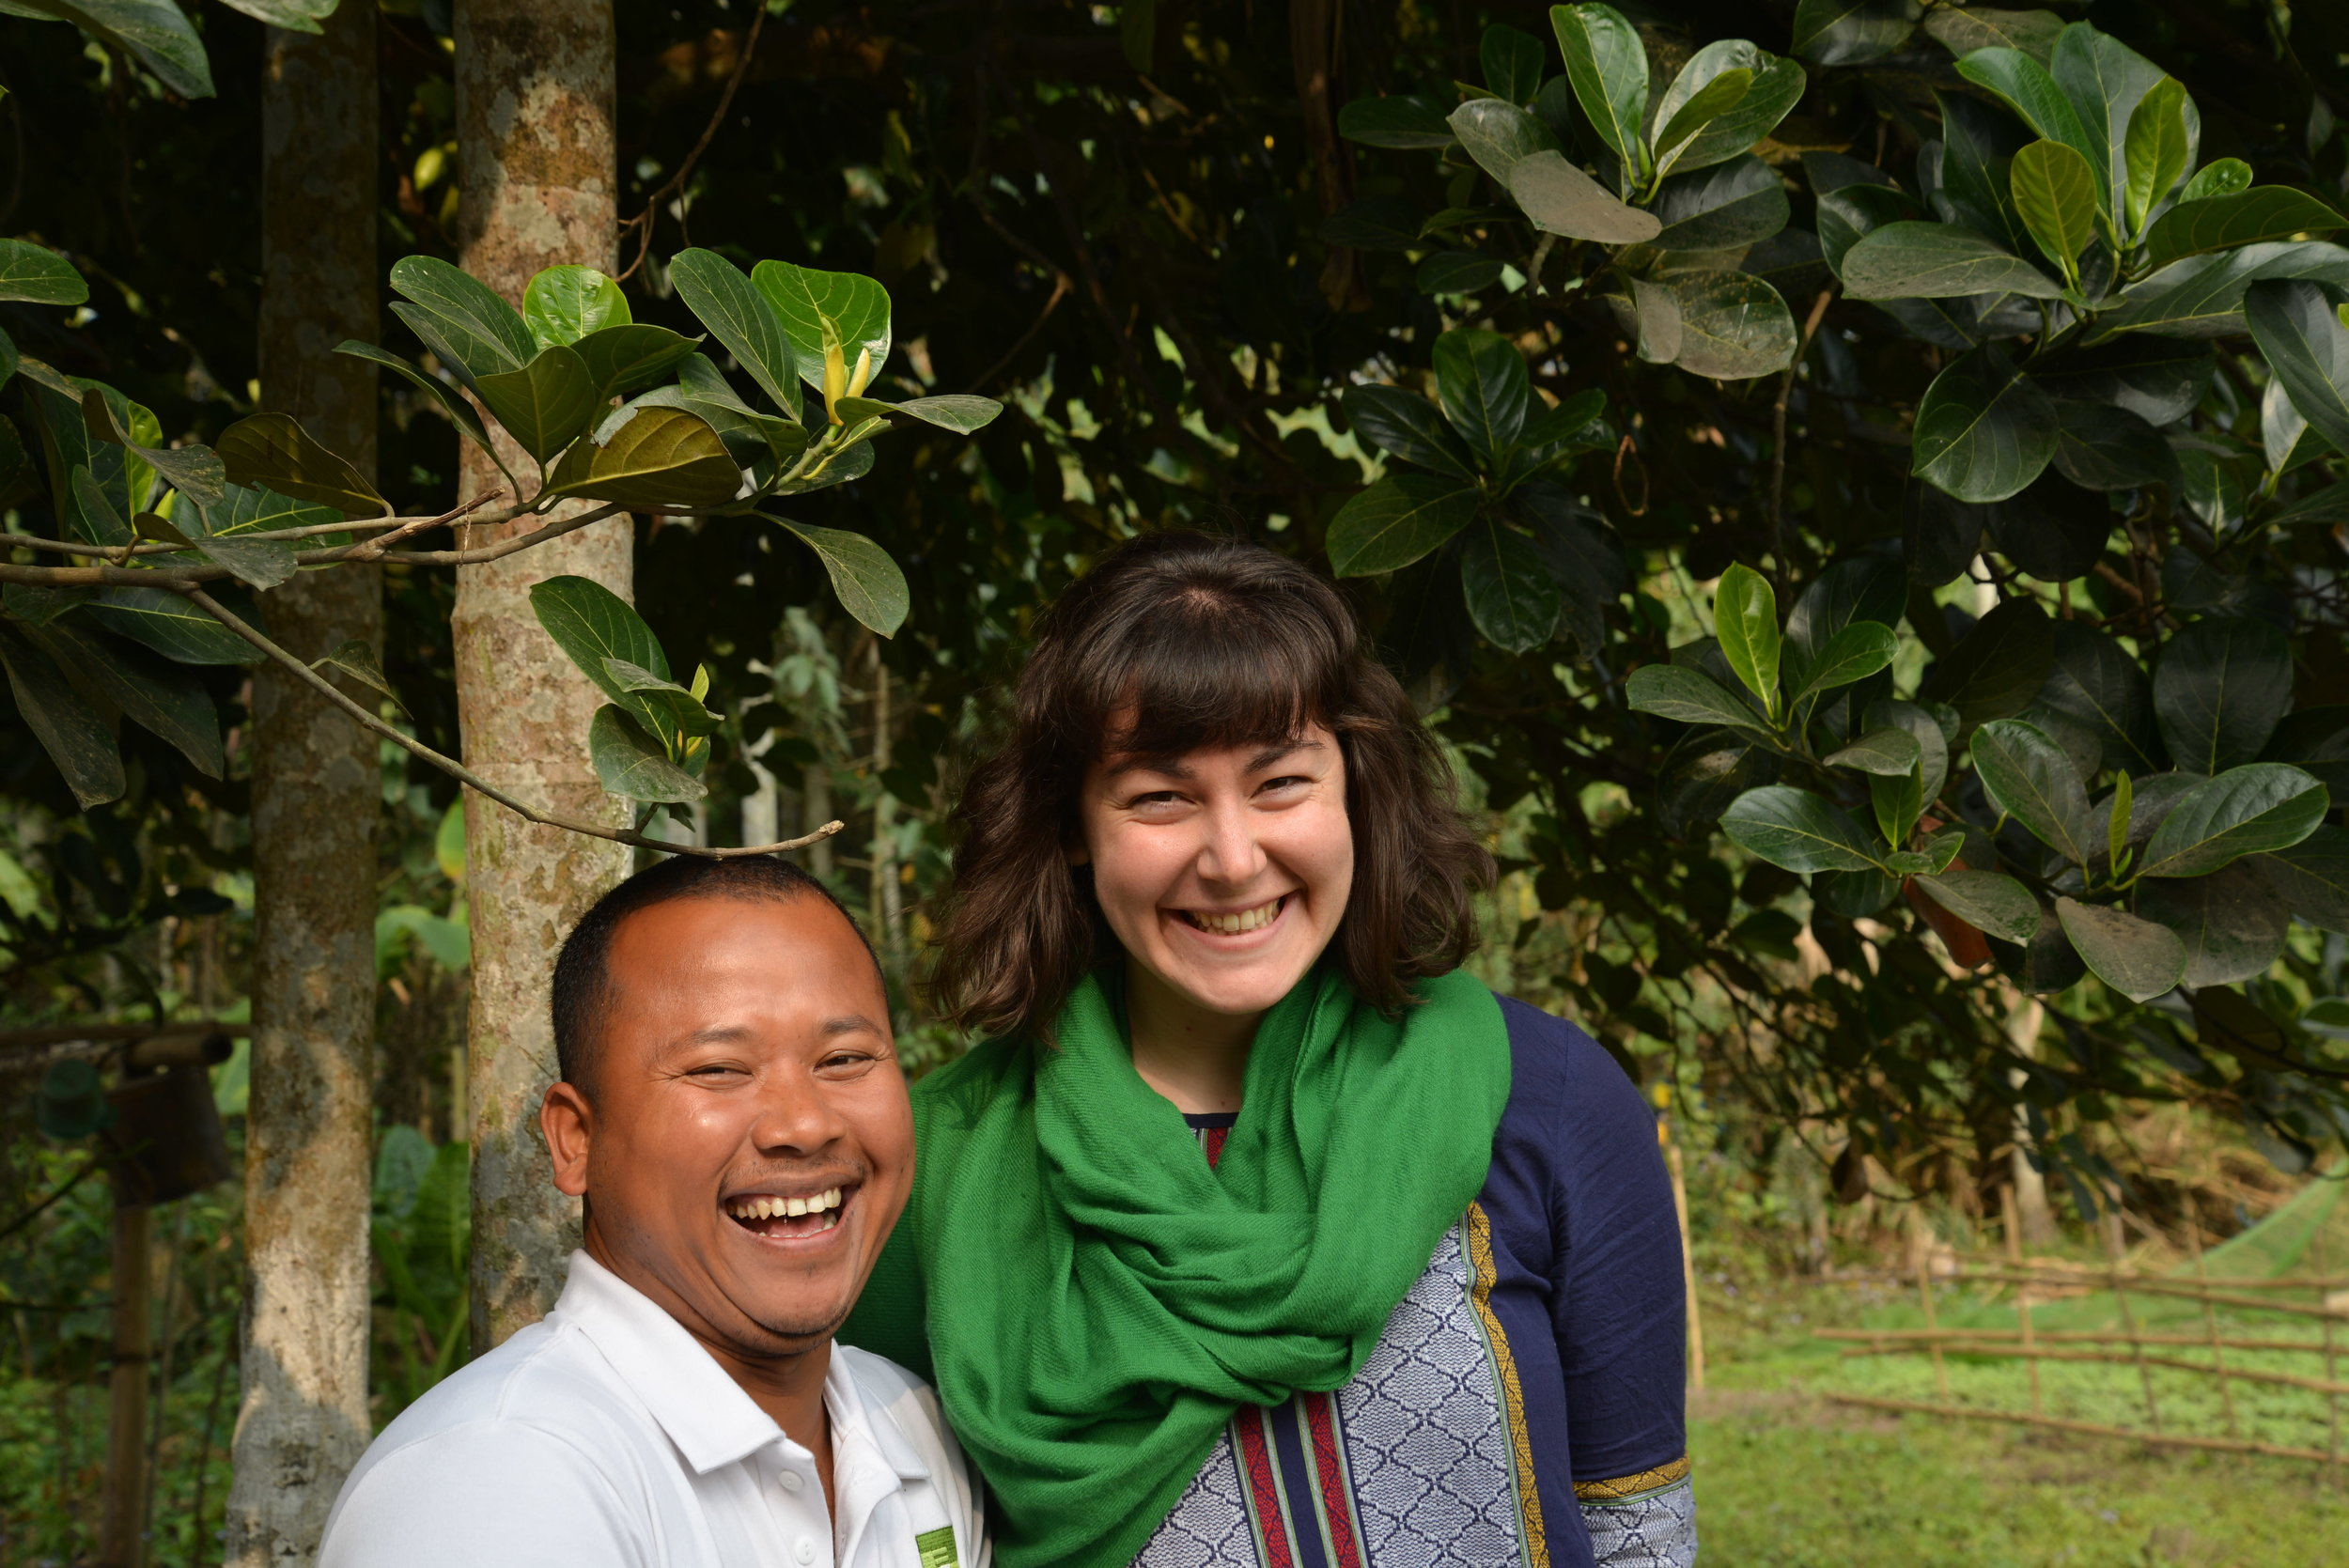 Level Ground staff, Wyn, shares a laugh with Tenzing at his home in Assam.